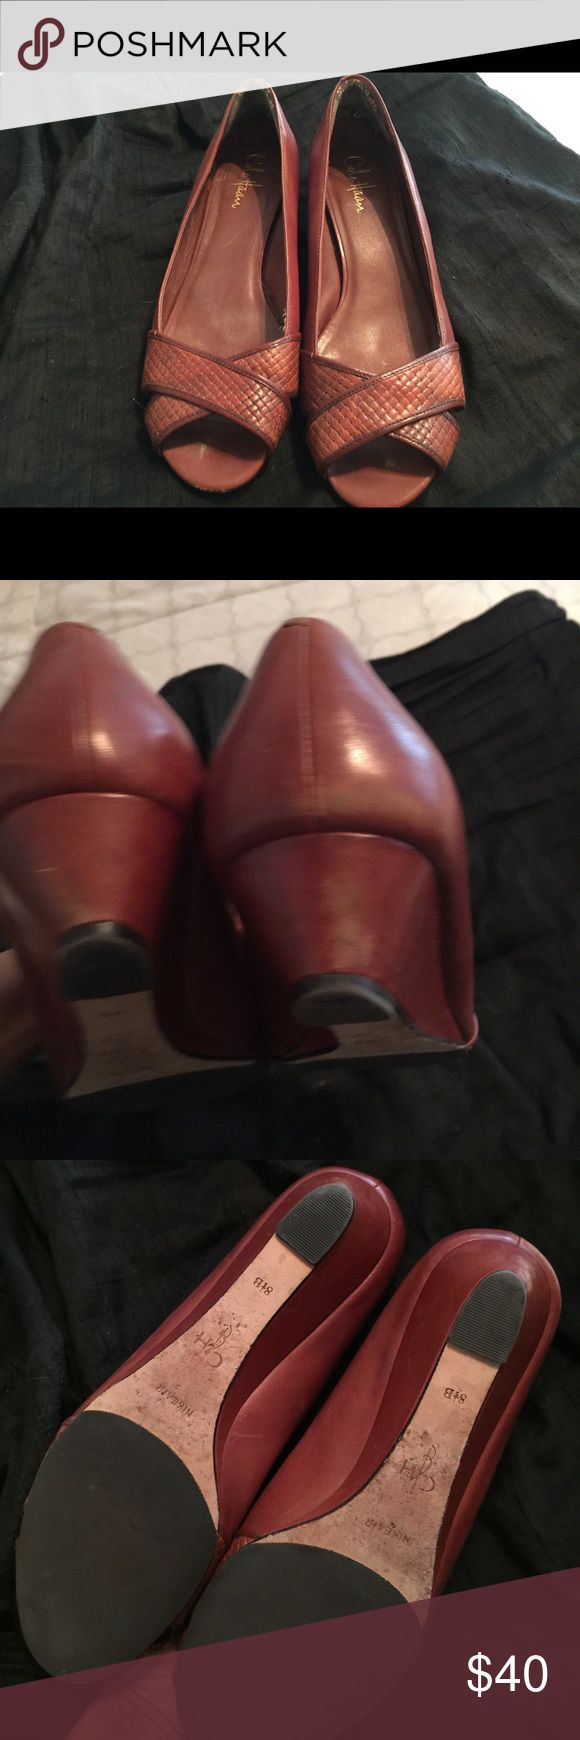 """Cole Haan🎉sale today 🎉 Gently worn maybe 5 times. Super comfy low wedge heel approx 1"""". Cole Haan Shoes Wedges"""